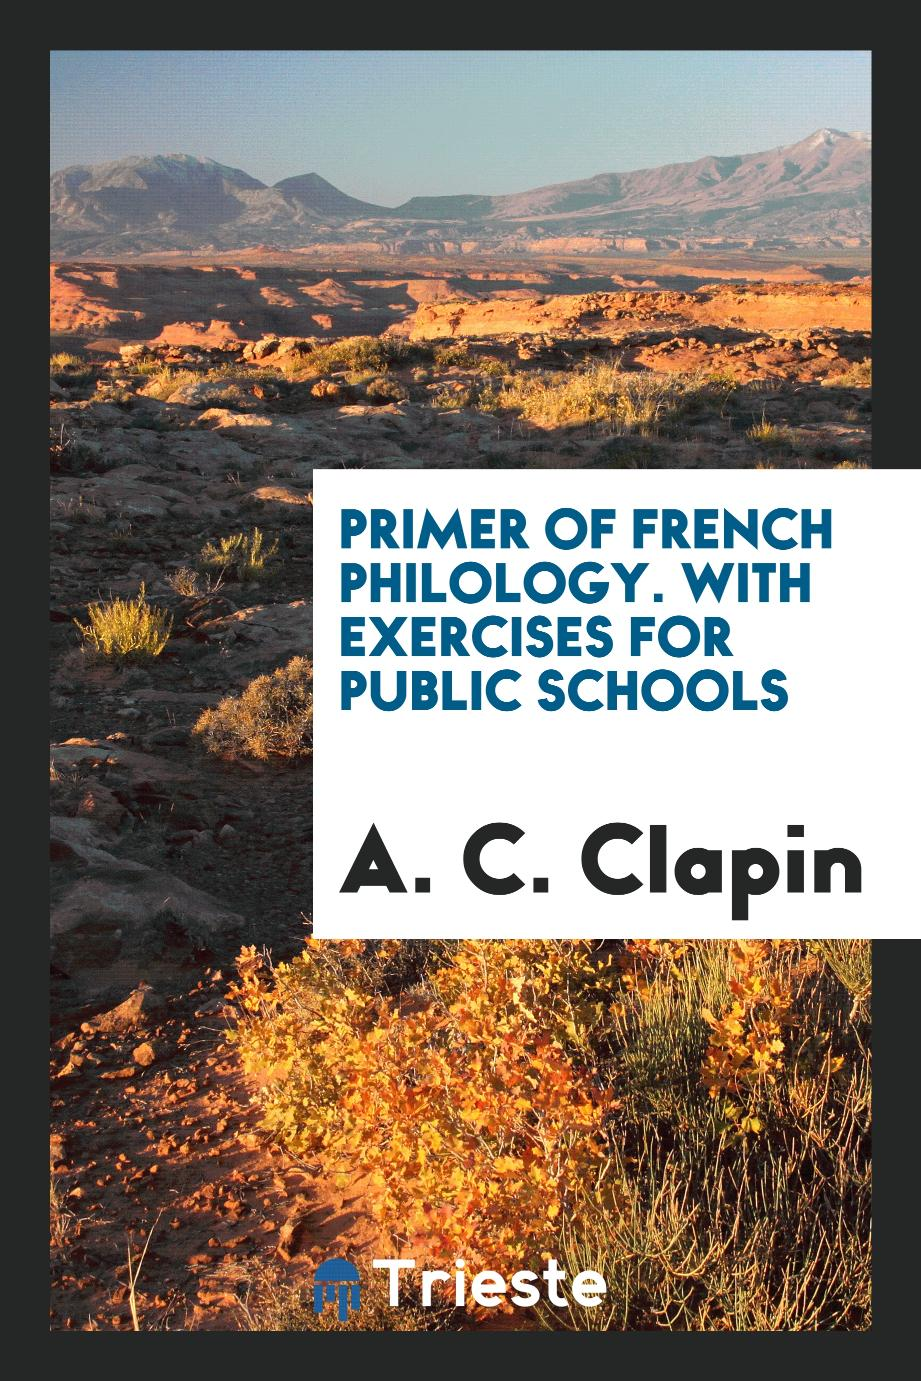 Primer of French philology. With exercises for public schools